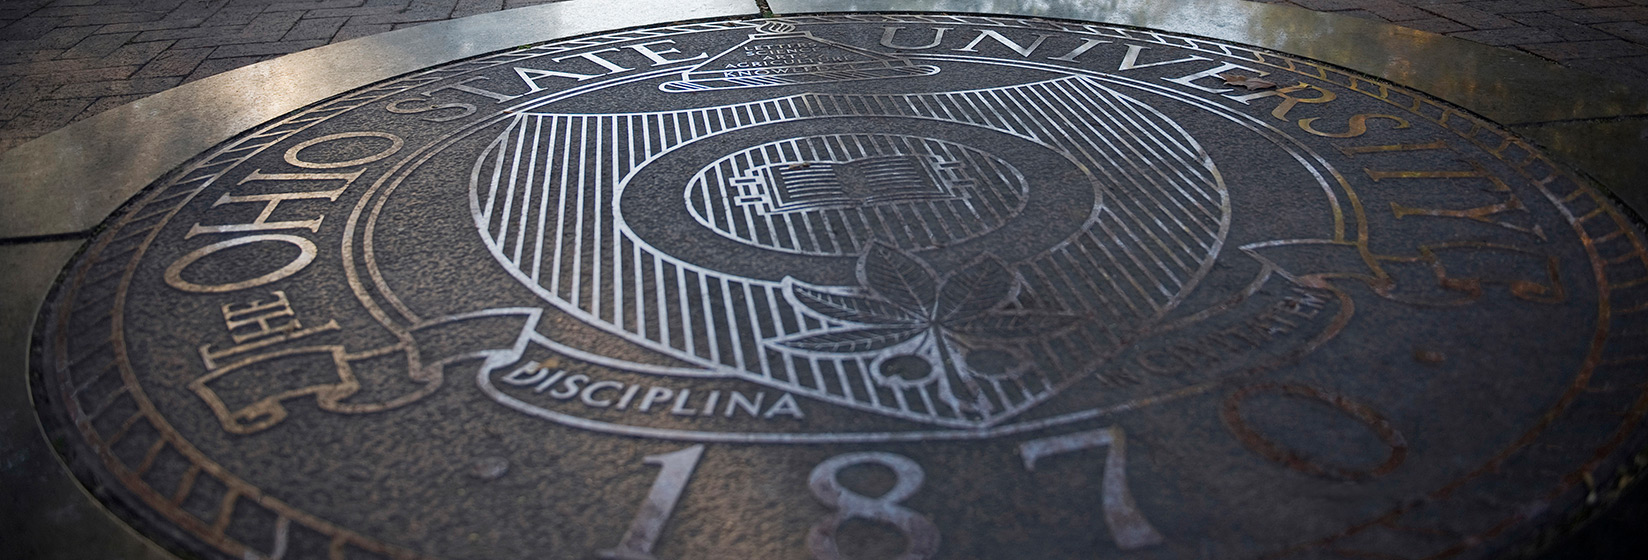 Seal of The Ohio State University on the Oval